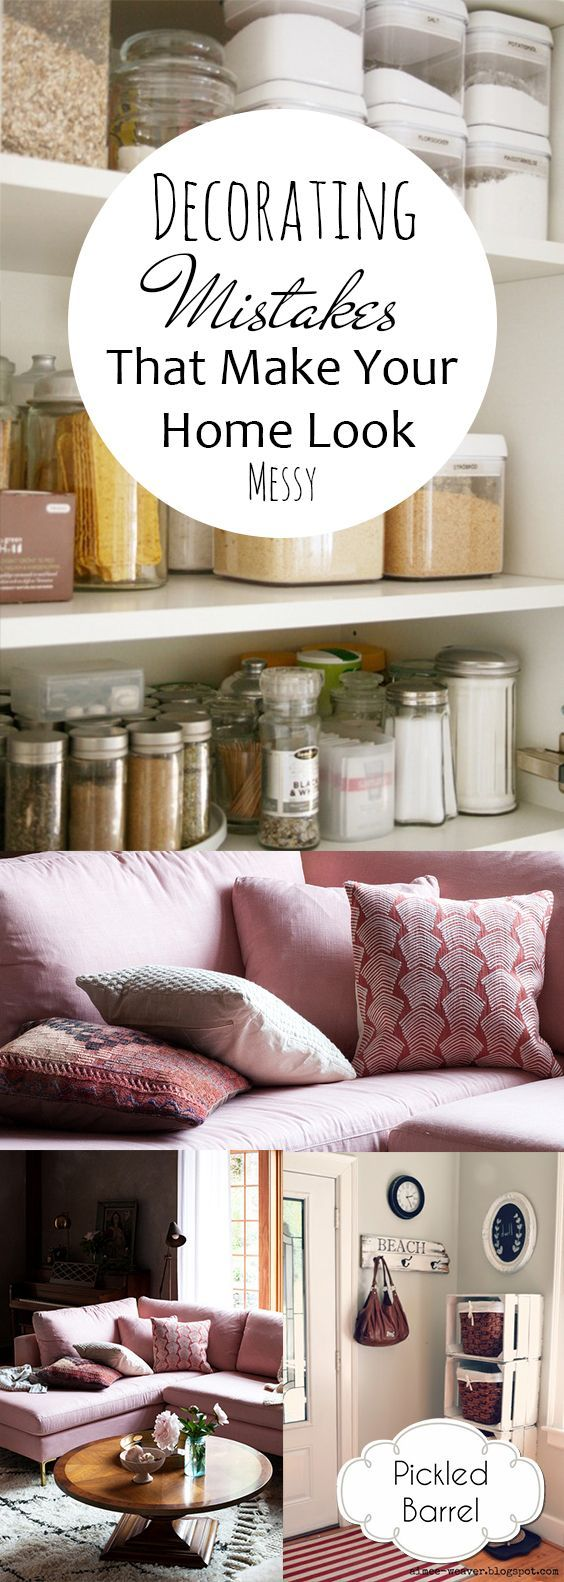 Decorating Mistakes That Make Your Home Look Messy